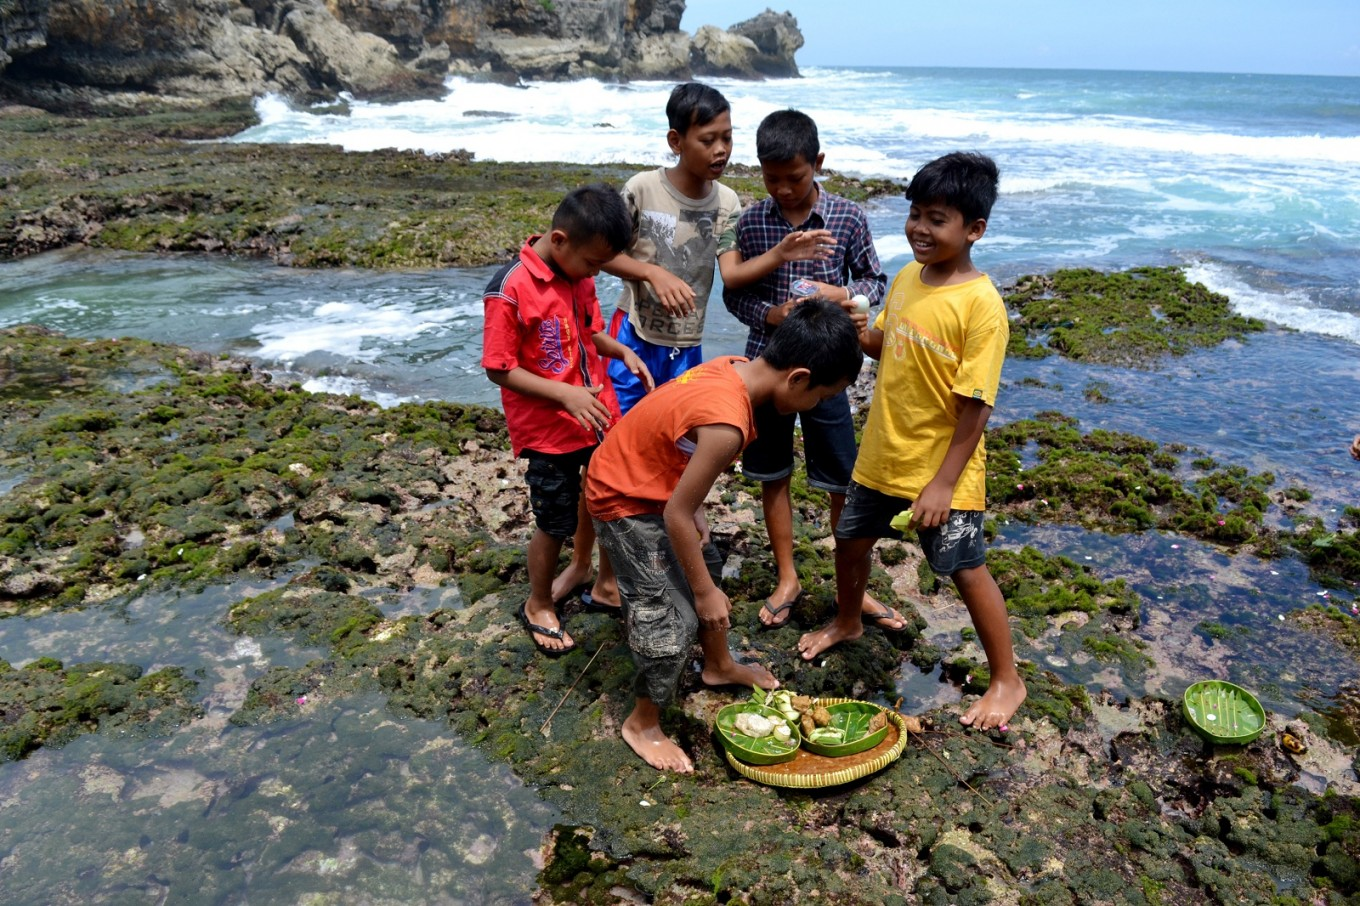 Children collect some of the offerings that were not washed away after the melasti ceremony finished.